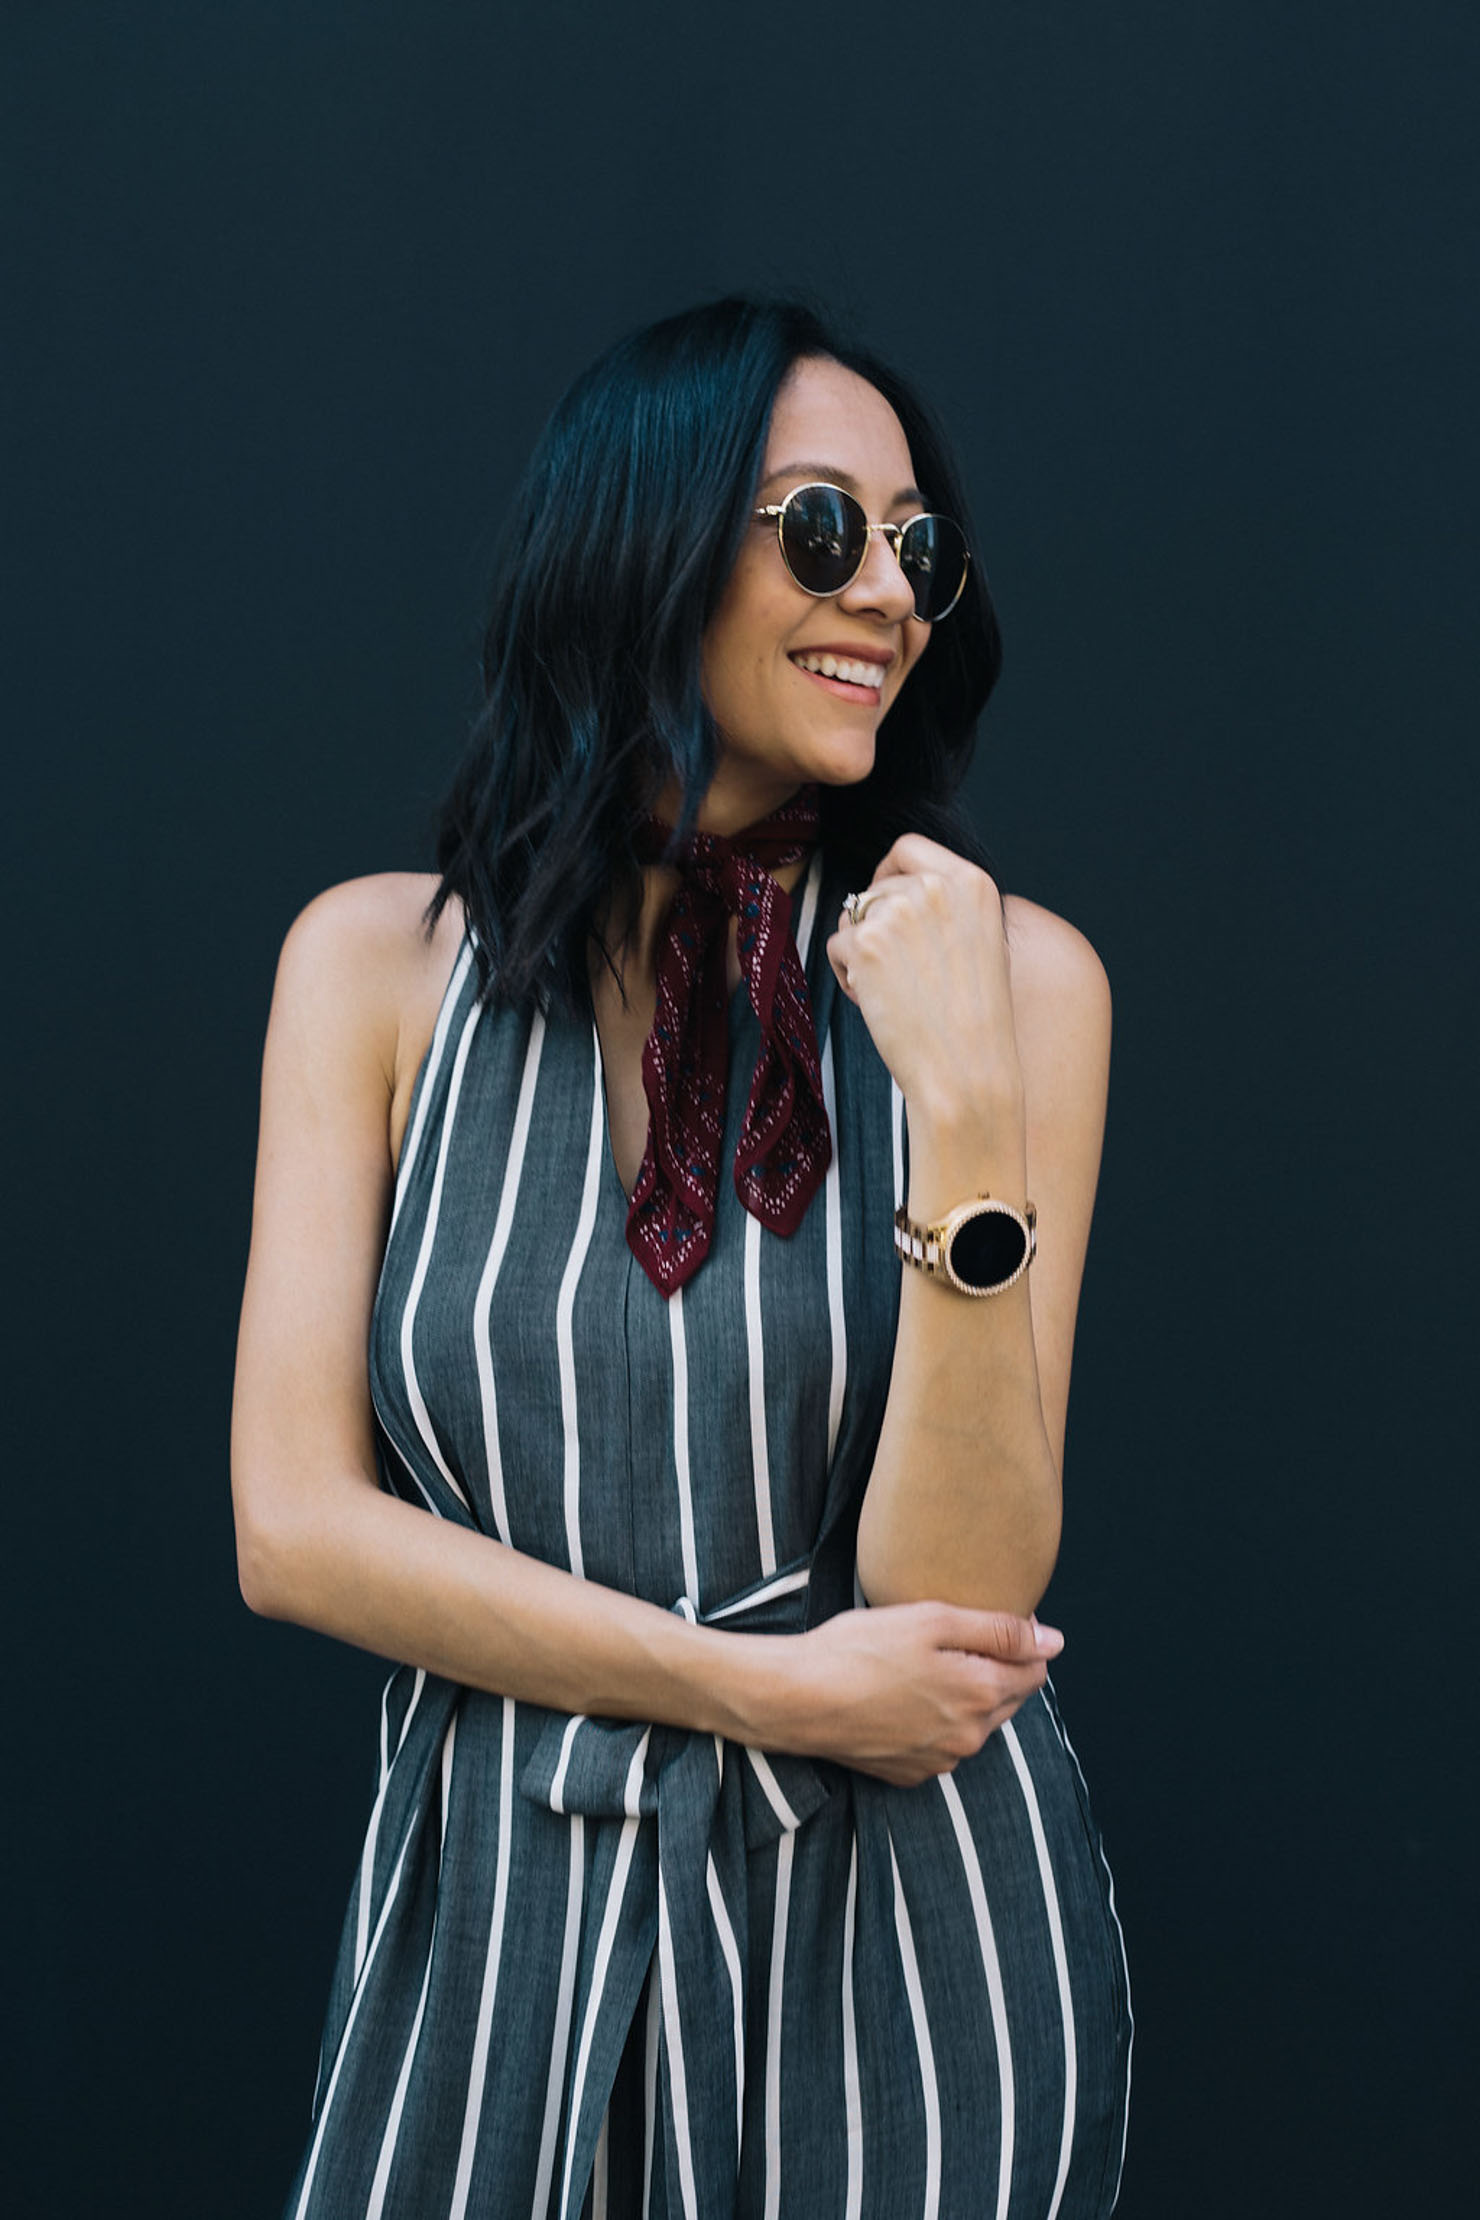 Style blogger Lilly Beltran of Daily Craving accessorizing with a red neckerchief and Fossil smartwatch